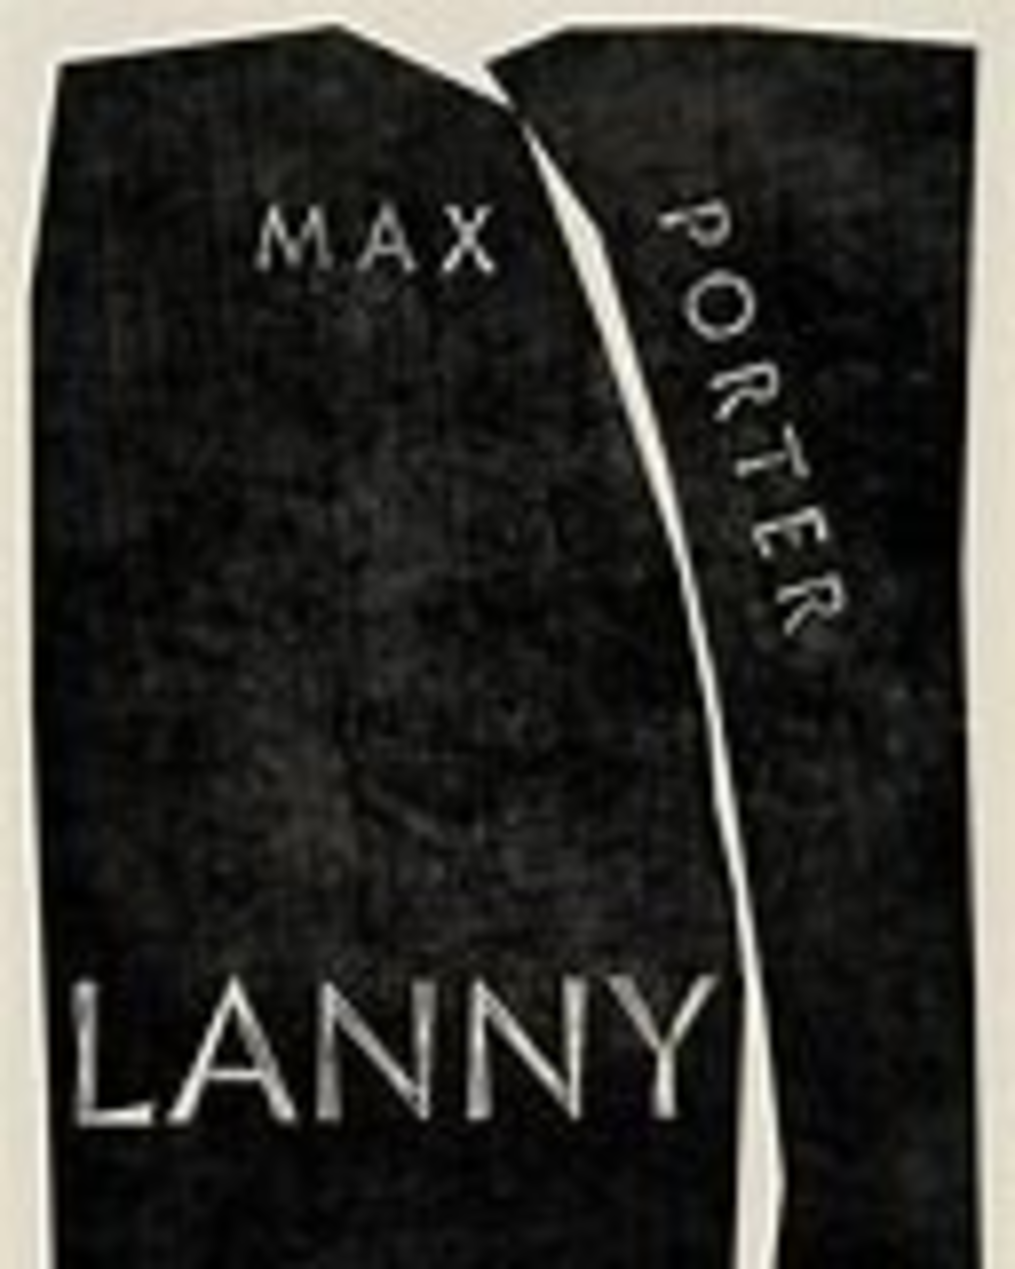 3-Amanda-Read-Guest-Blog-Magical-Techniques-Magic-Realism-and-the-Author-Susan-Shiney-Max-Porter-Lanny